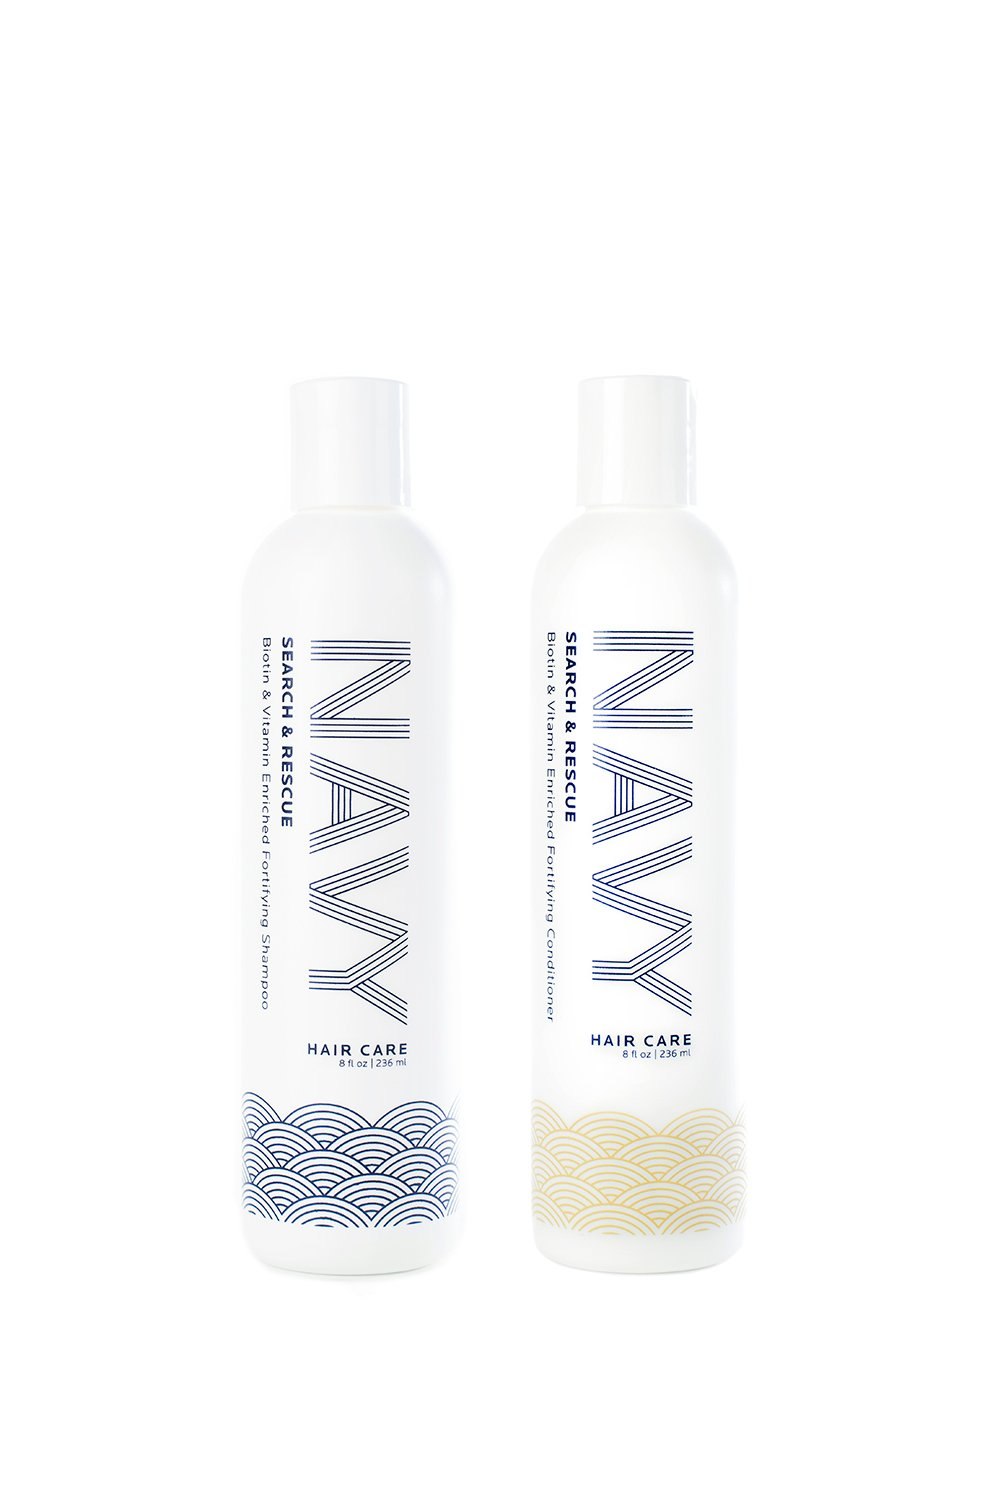 Search and Rescue: Biotin and Vitamin Enriched Fortifying Shampoo and Conditioner I NAVY Hair Care